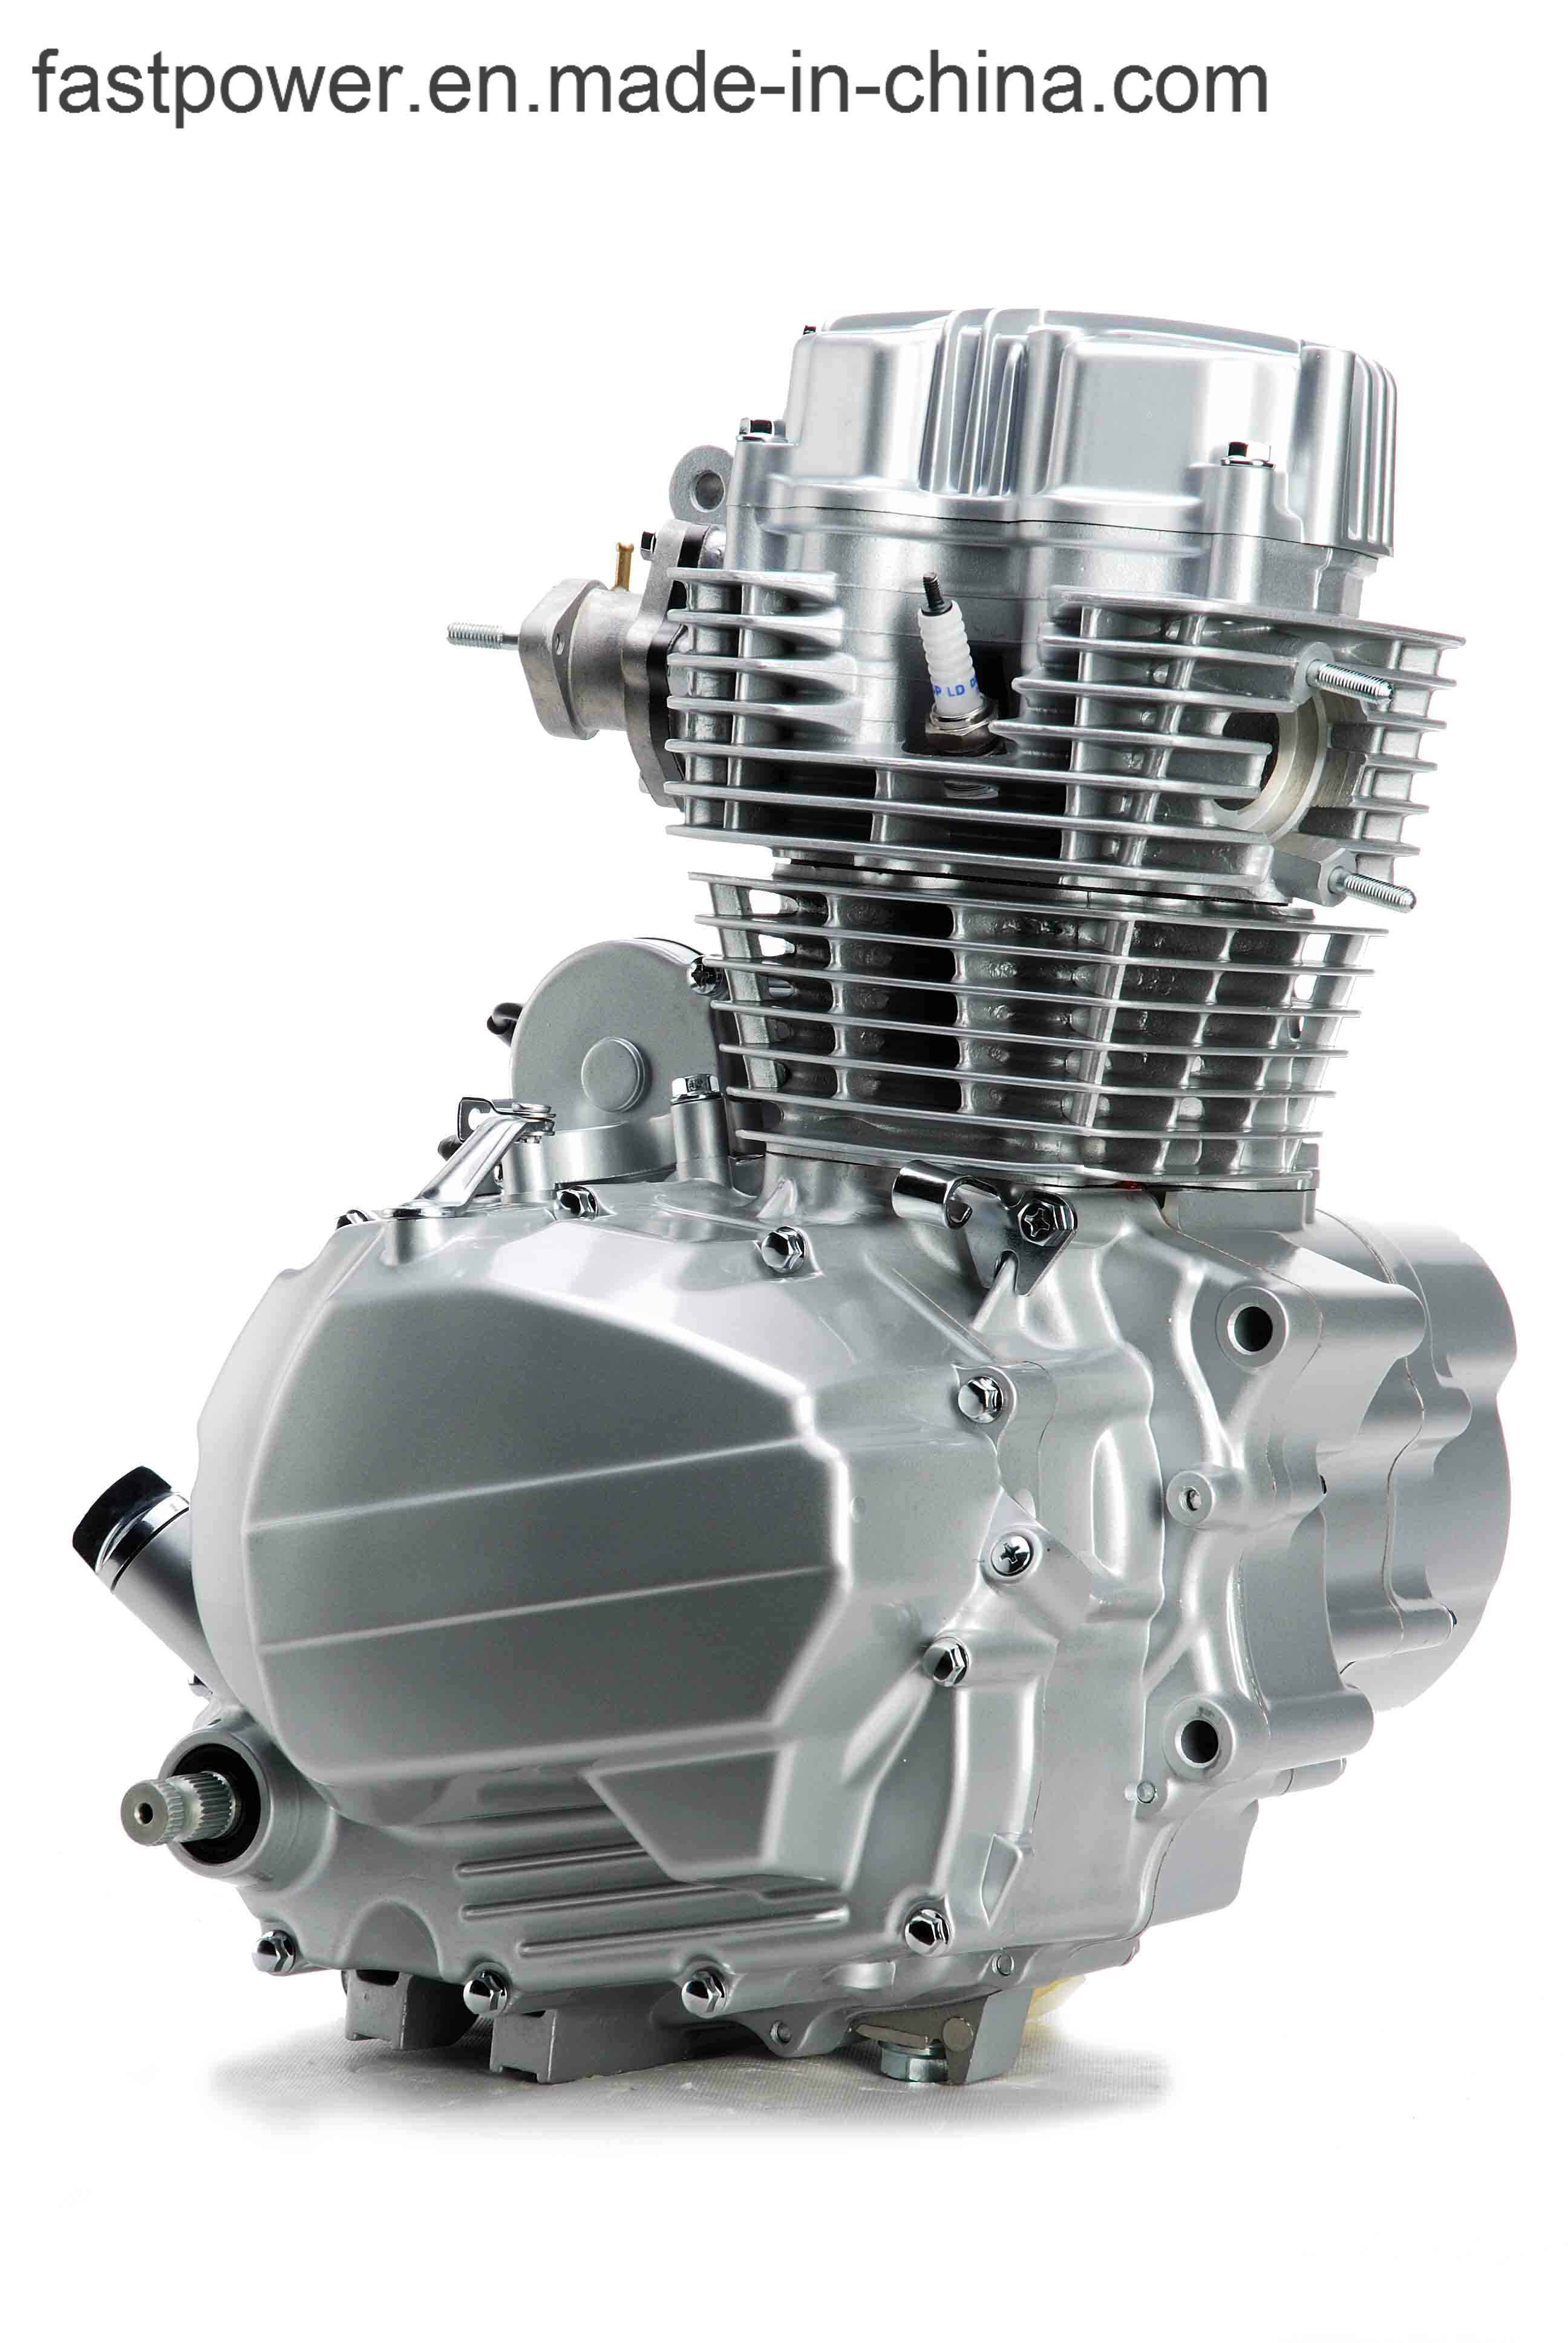 Engine for Cg125